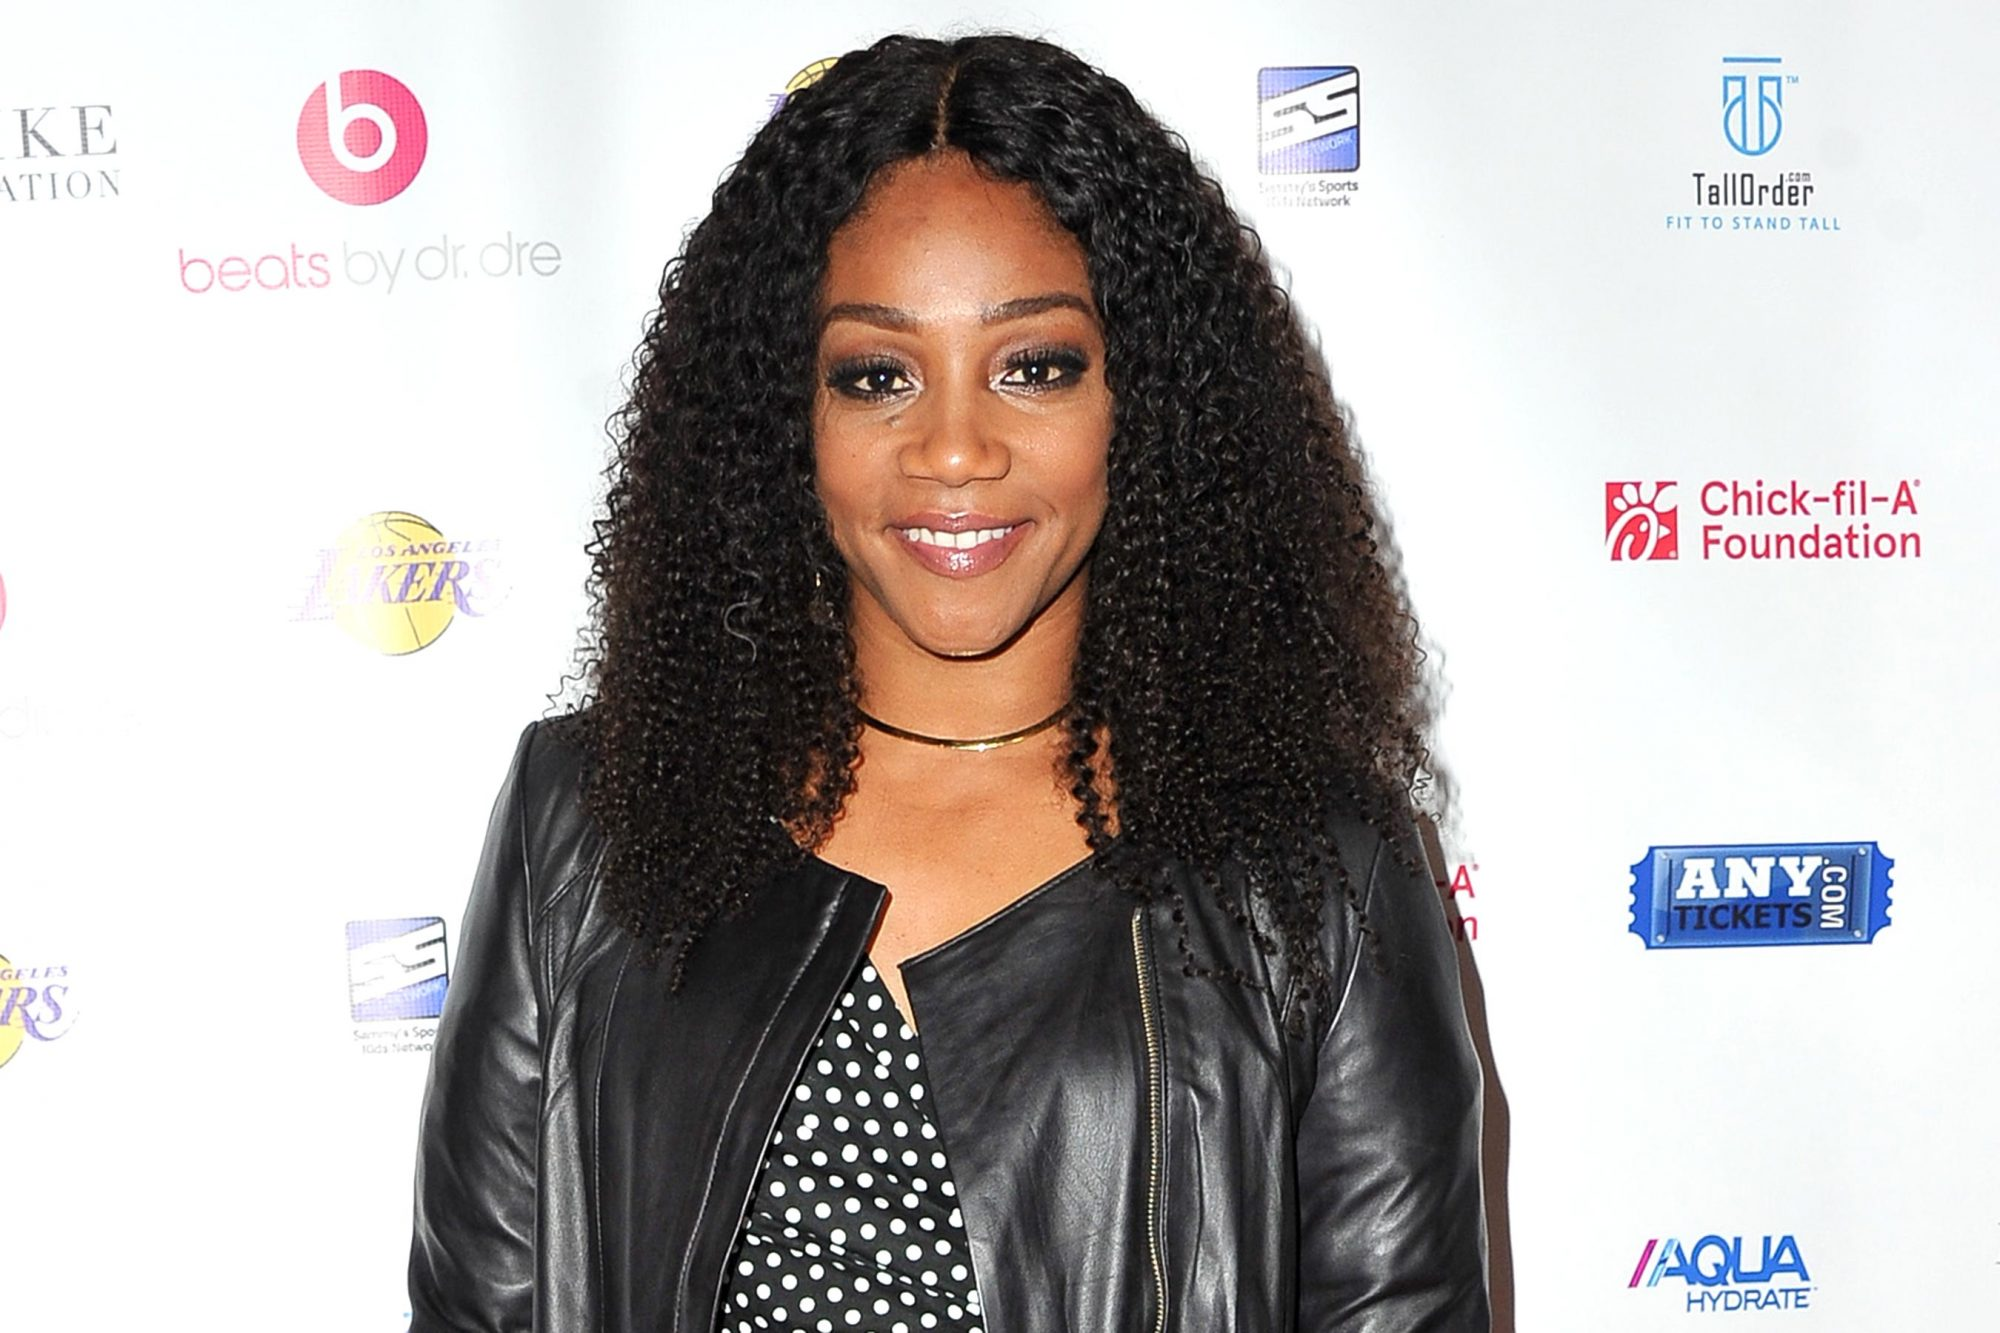 918878748 LOS ANGELES, CA - FEBRUARY 15: Actress Tiffany Haddish attends the NBA All-Star Bowling Classic at Lucky Strike LA Live on February 15, 2018 in Los Angeles, California. (Photo by Allen Berezovsky/Getty Images)